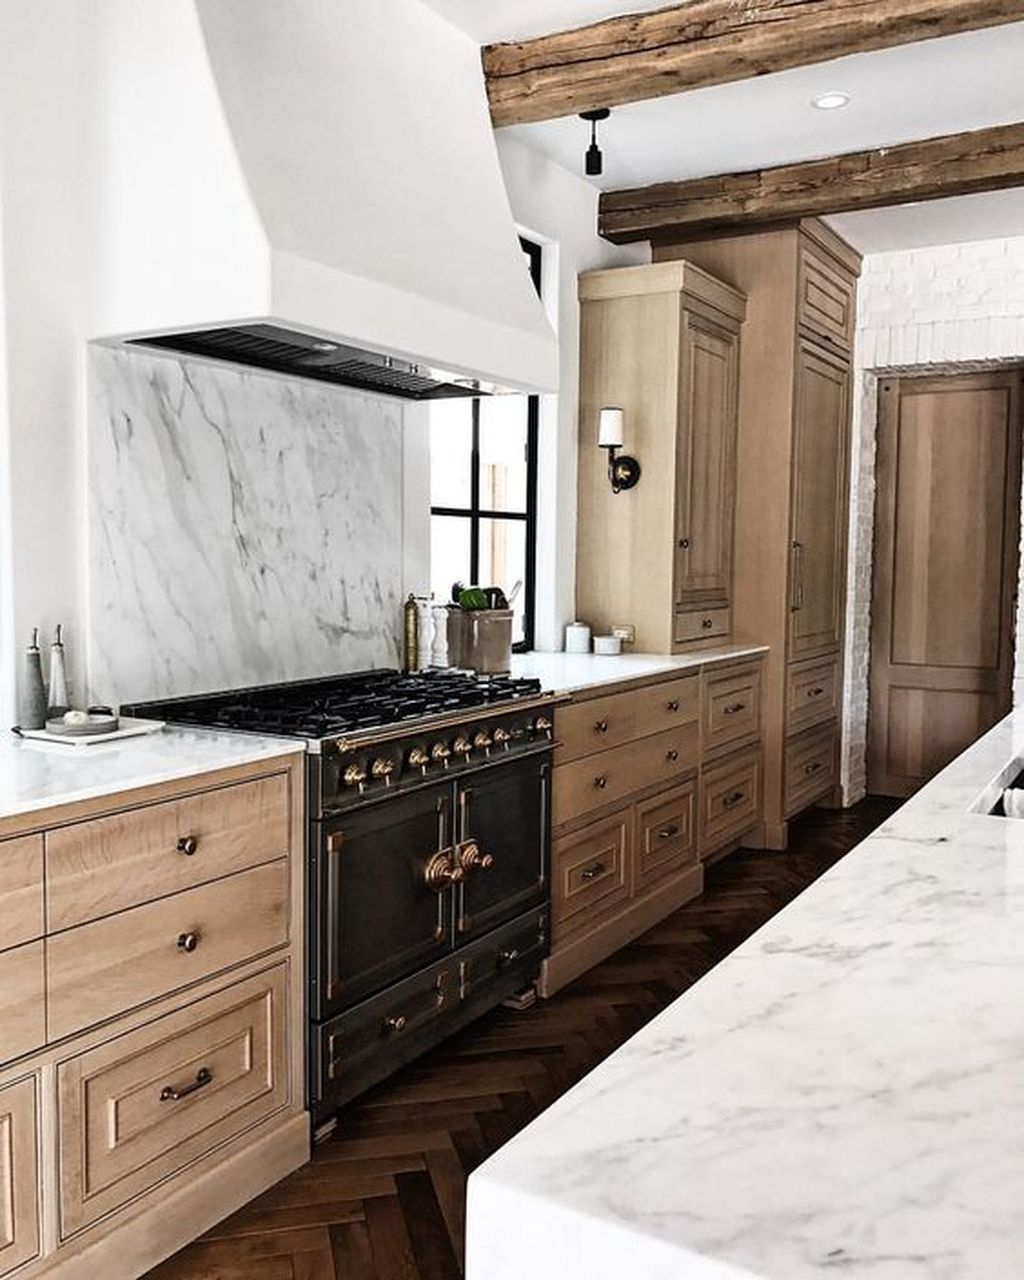 Cool Diy Kitchen Design Ideas You Will Definitely Want To Keep 32